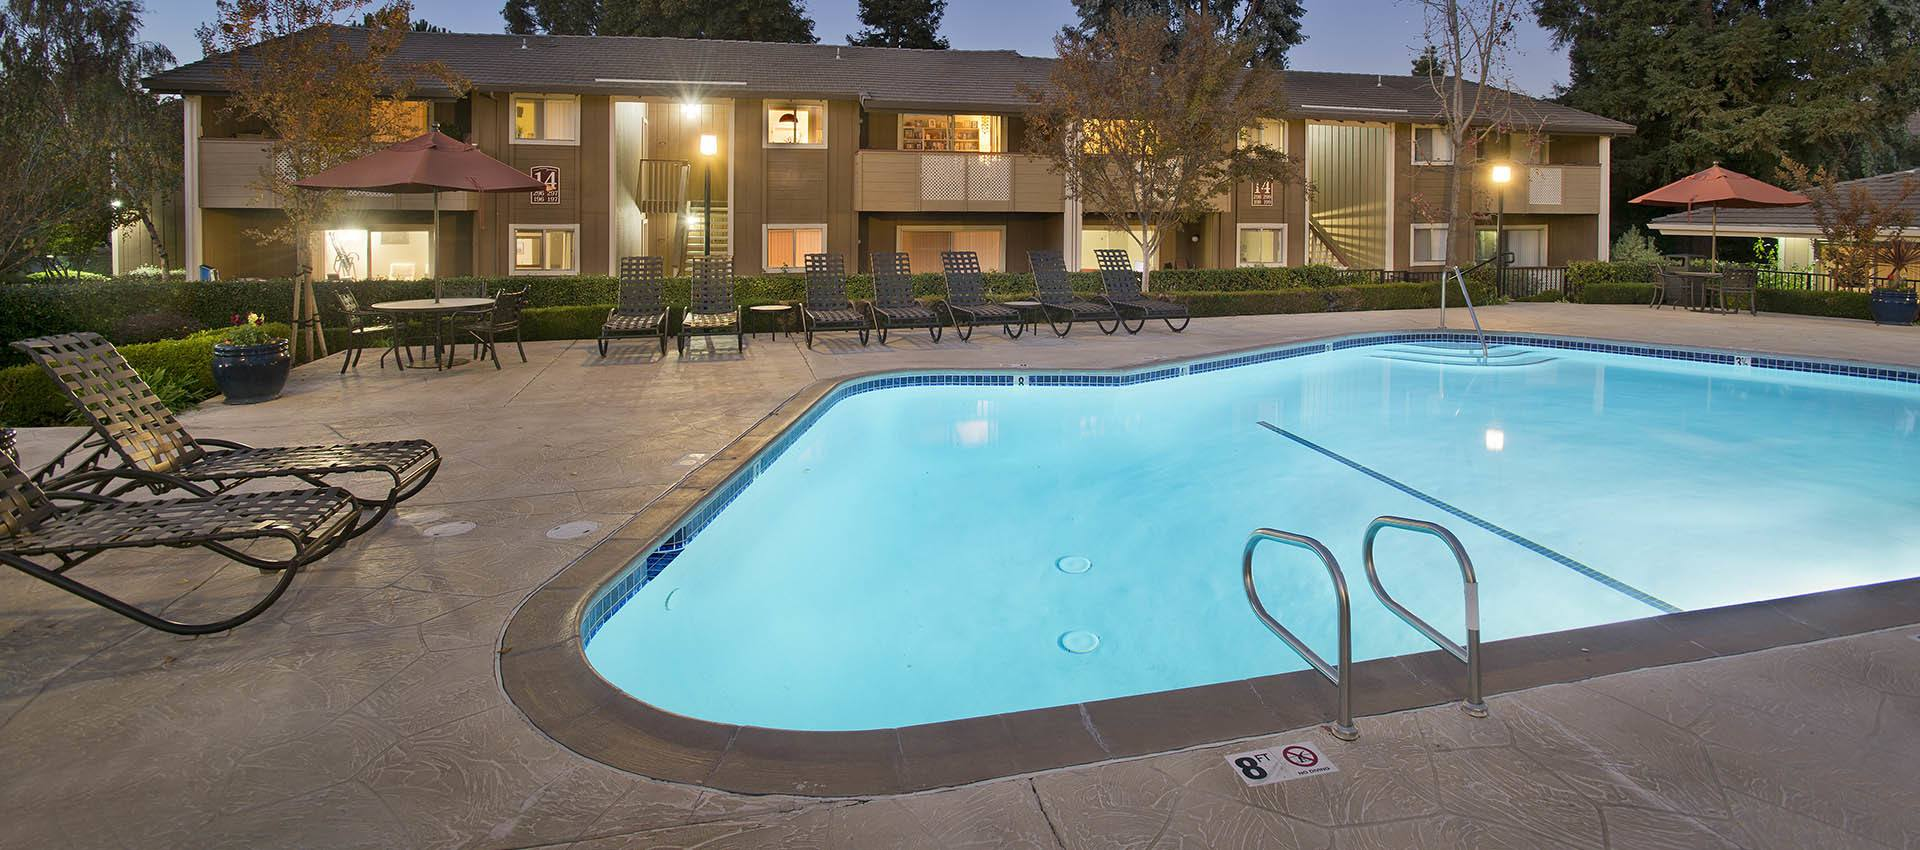 Expansive Pool Deck at Shadow Oaks Apartment Homes in Cupertino